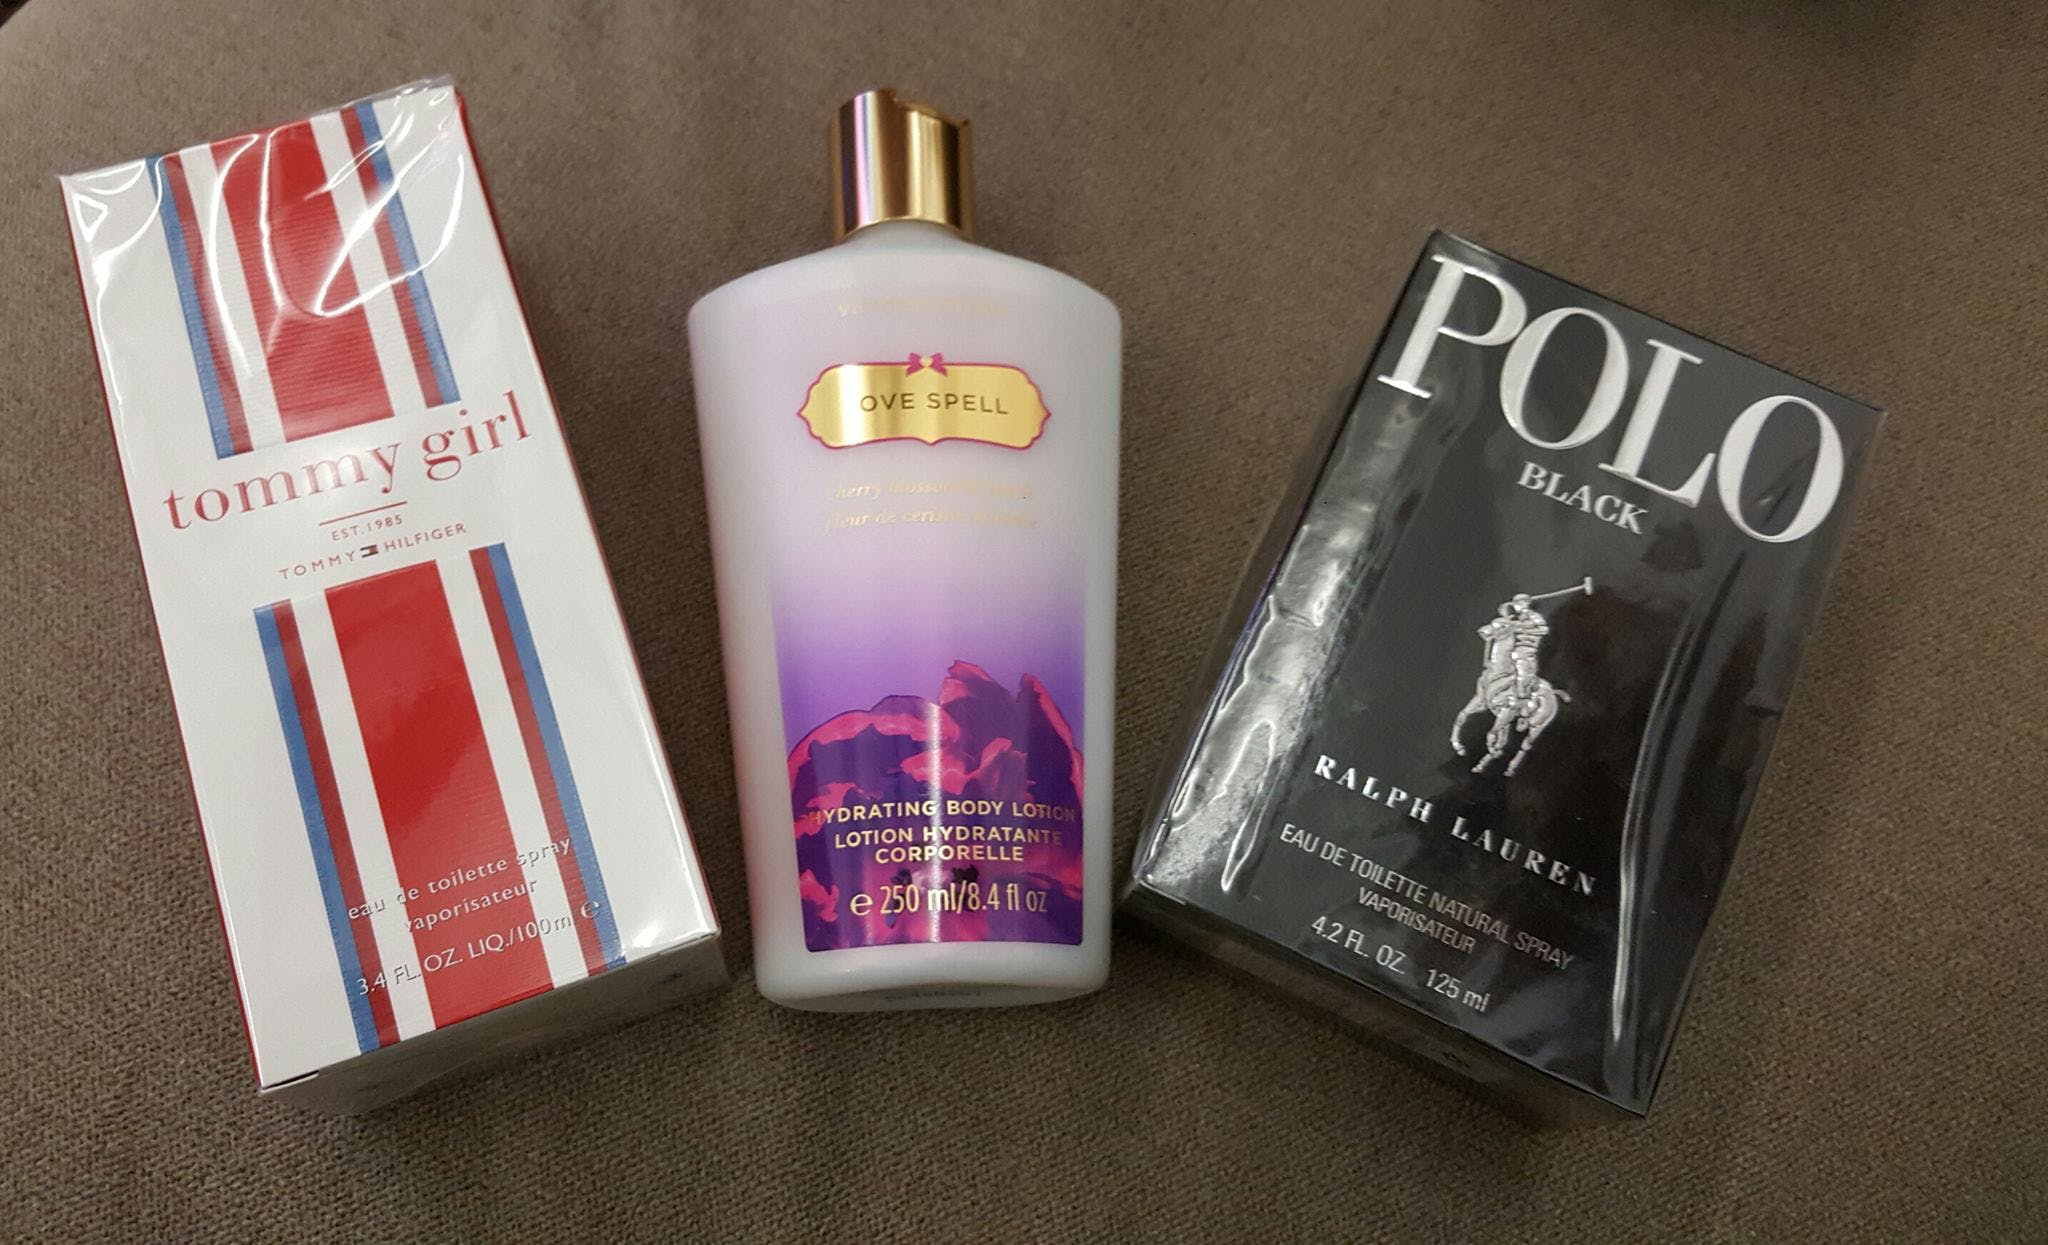 Tommy Hilfiger Girl 100ml Perfume Philippines